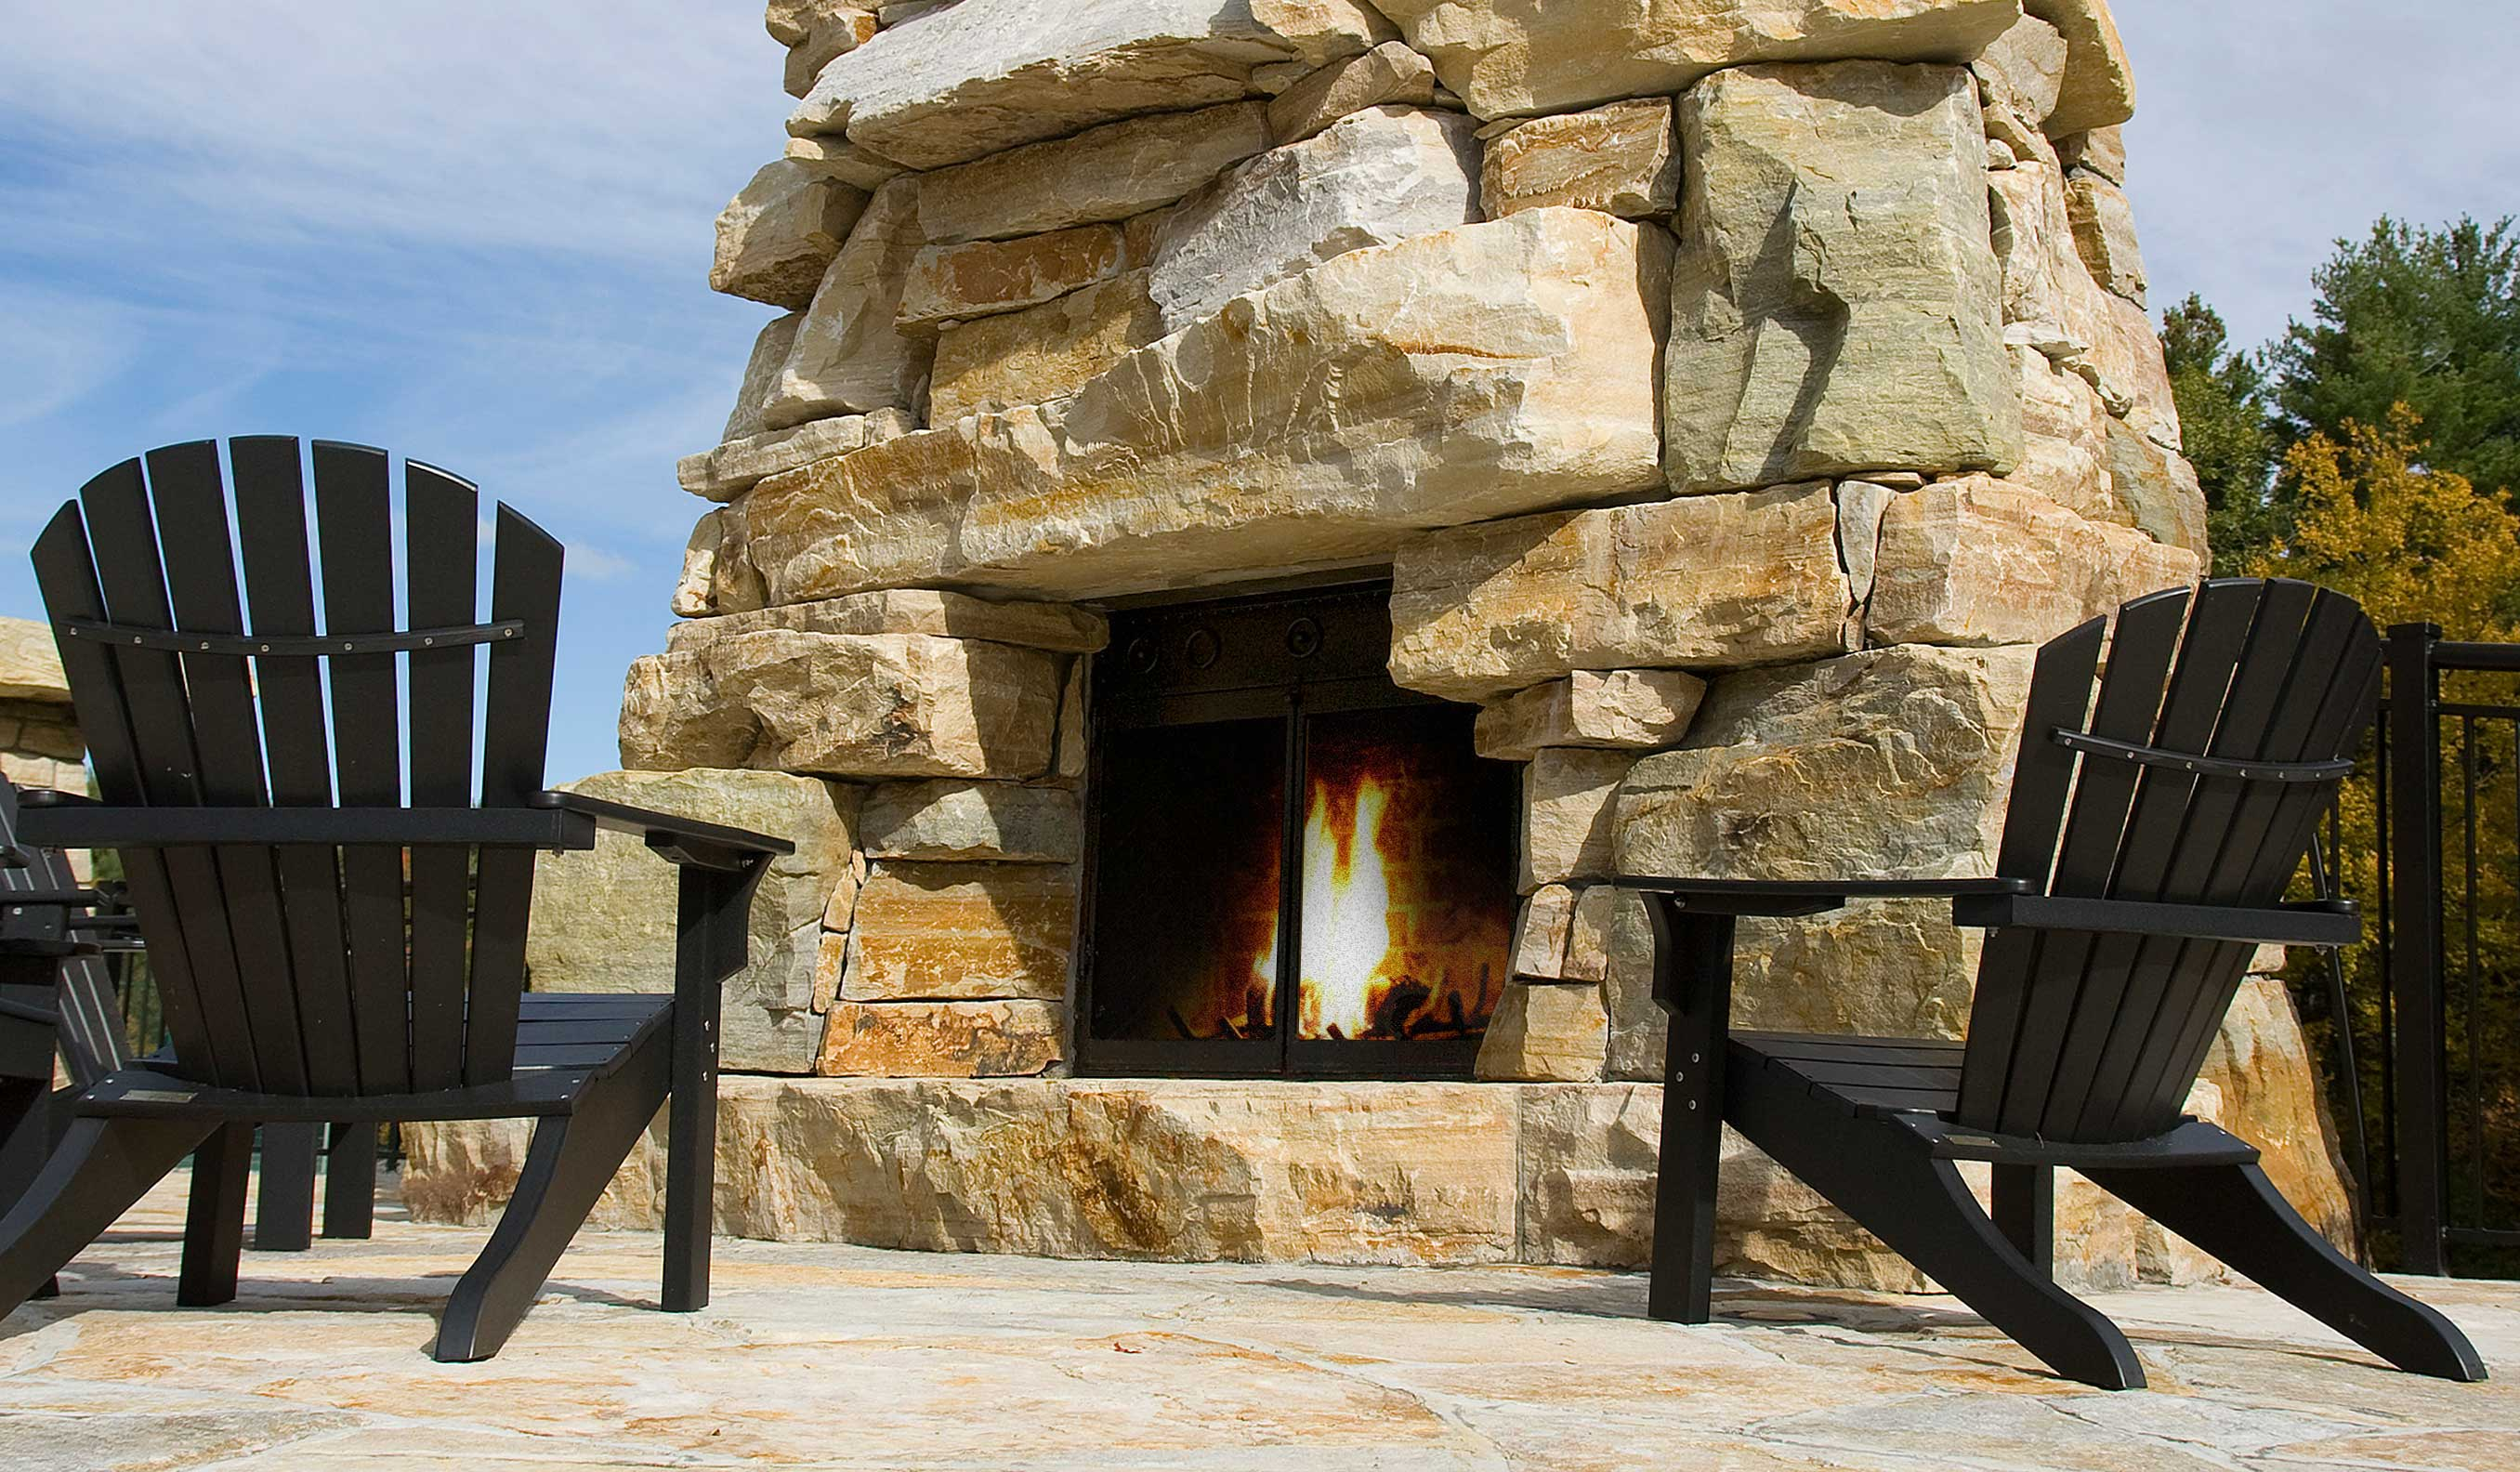 Large stone risers used to build an exterior fire place